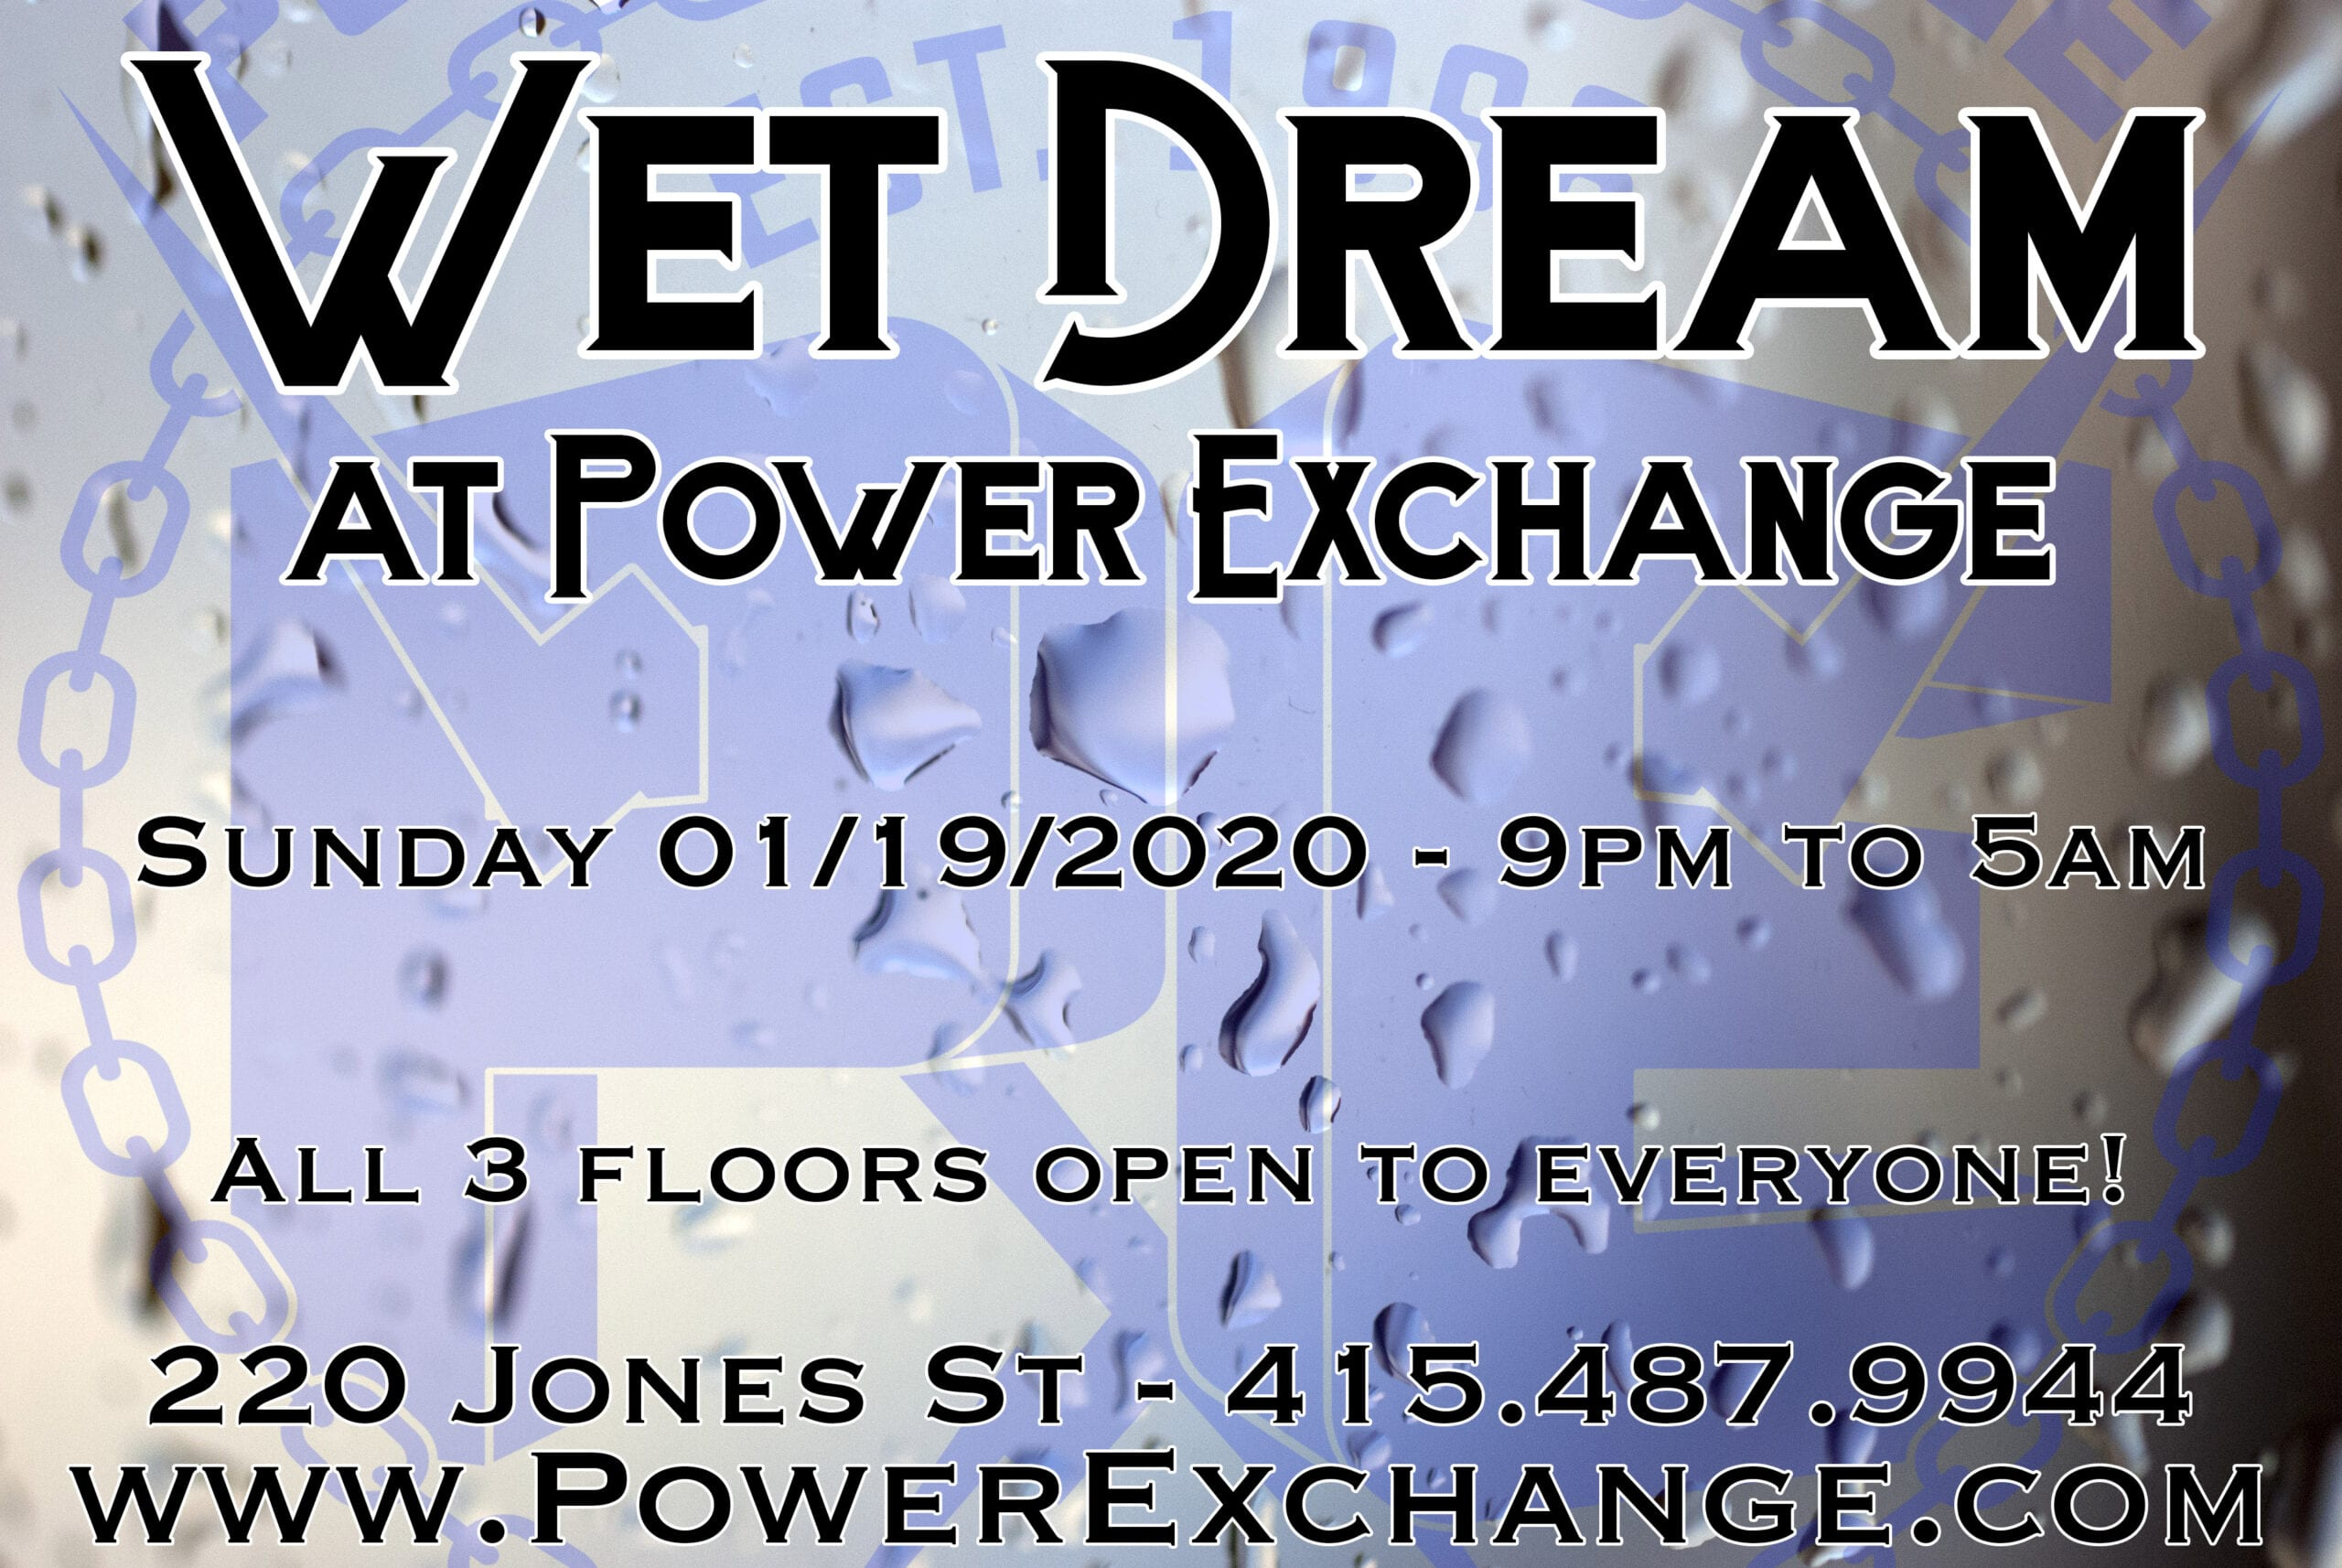 Wet Dream - 01/19/20 - All 3 floors open to everyone!